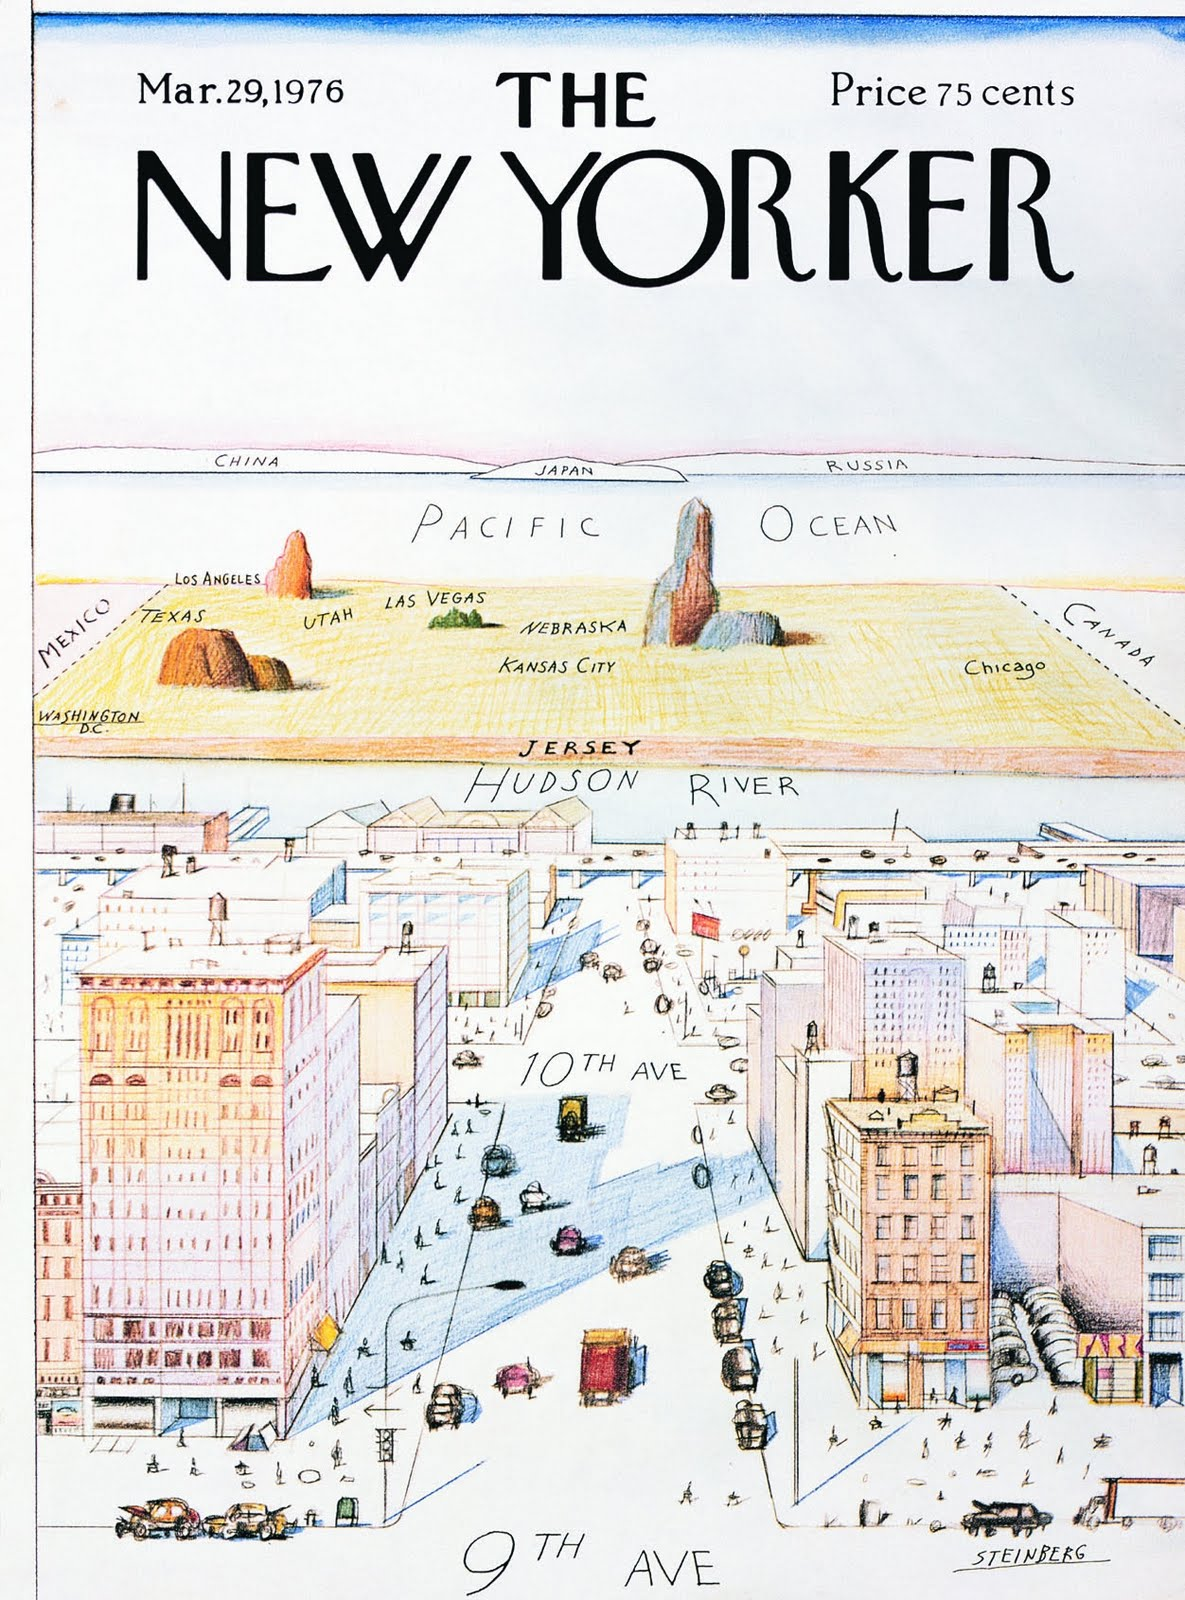 this is the famous new yorker magazine cover by steinberg from 1976 showing a new yorker s view of the world this cover has been parodied extensively